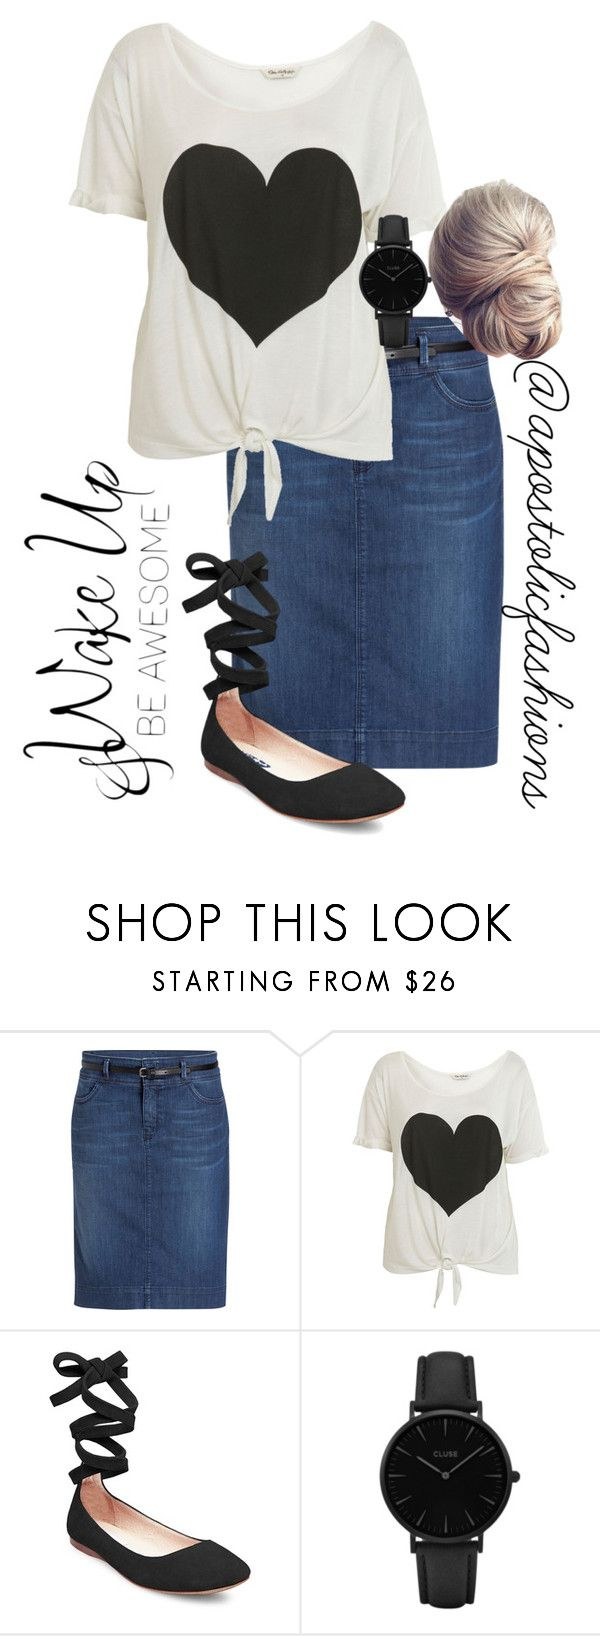 """""""Apostolic Fashions #1705"""" by apostolicfashions ❤ liked on Polyvore featuring Miss Selfridge, Steve Madden, CLUSE and WALL"""